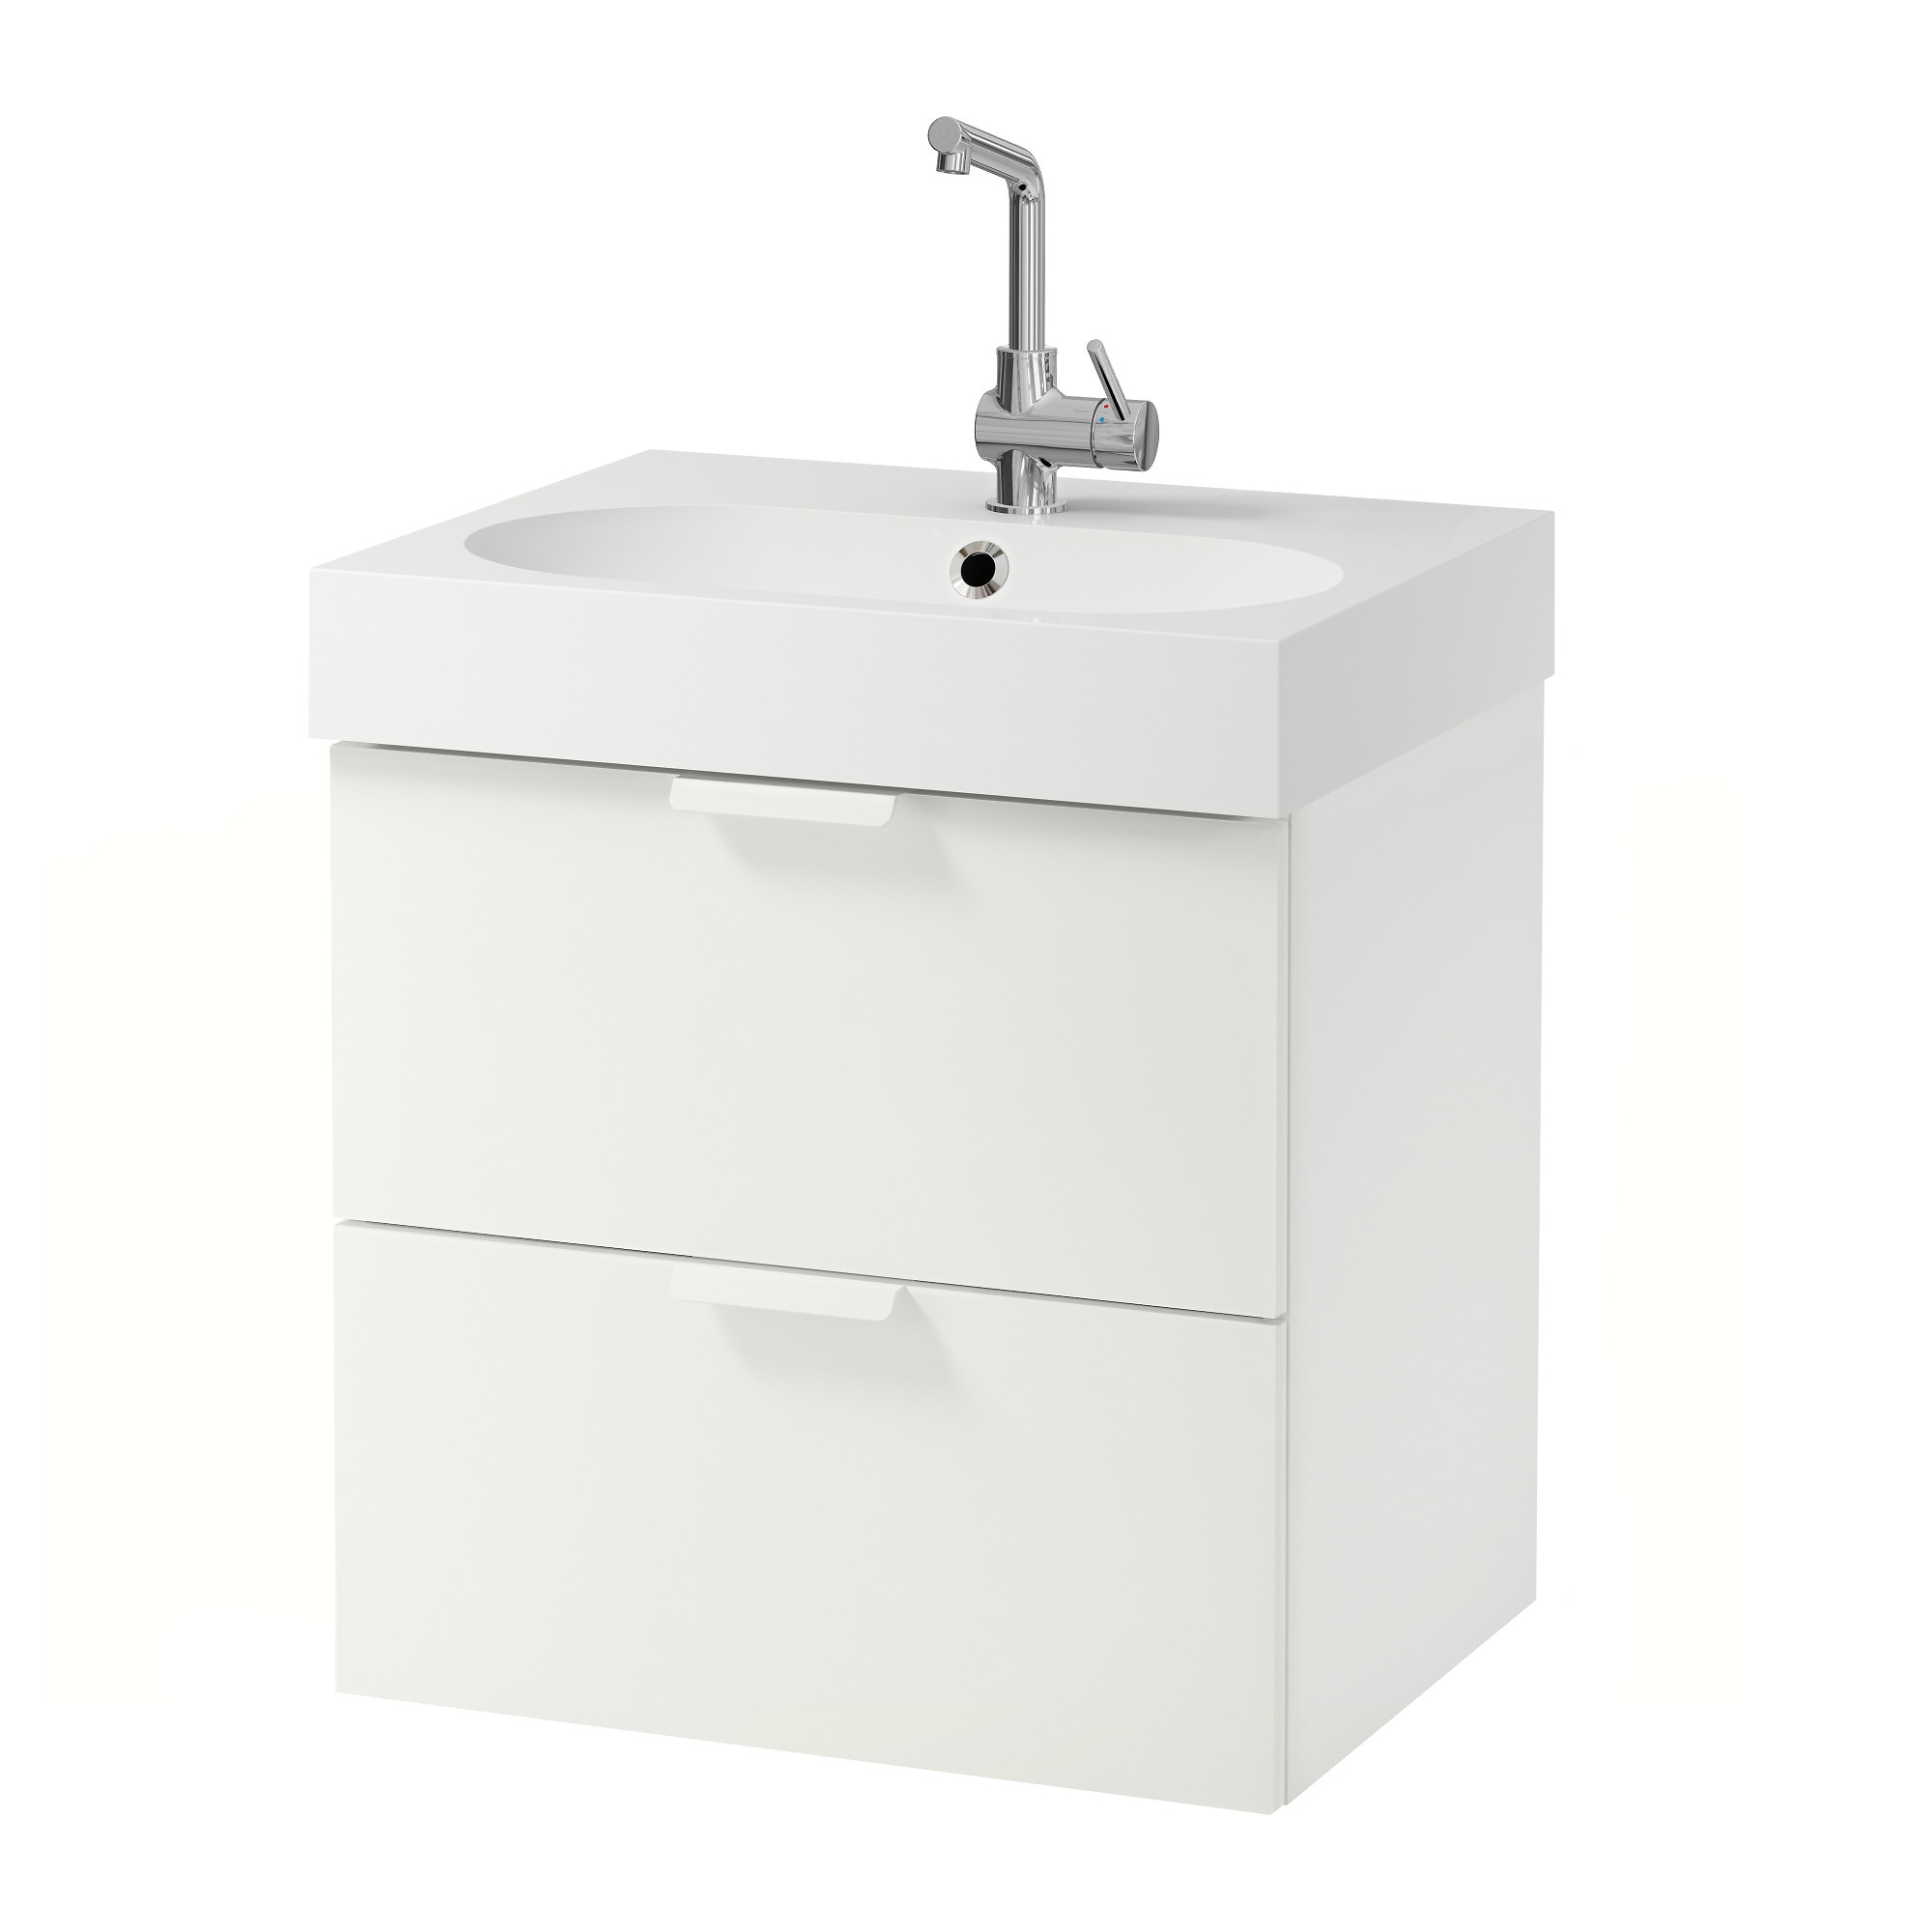 White Bathroom Sink Cabinets bathroom sink cabinets - ikea